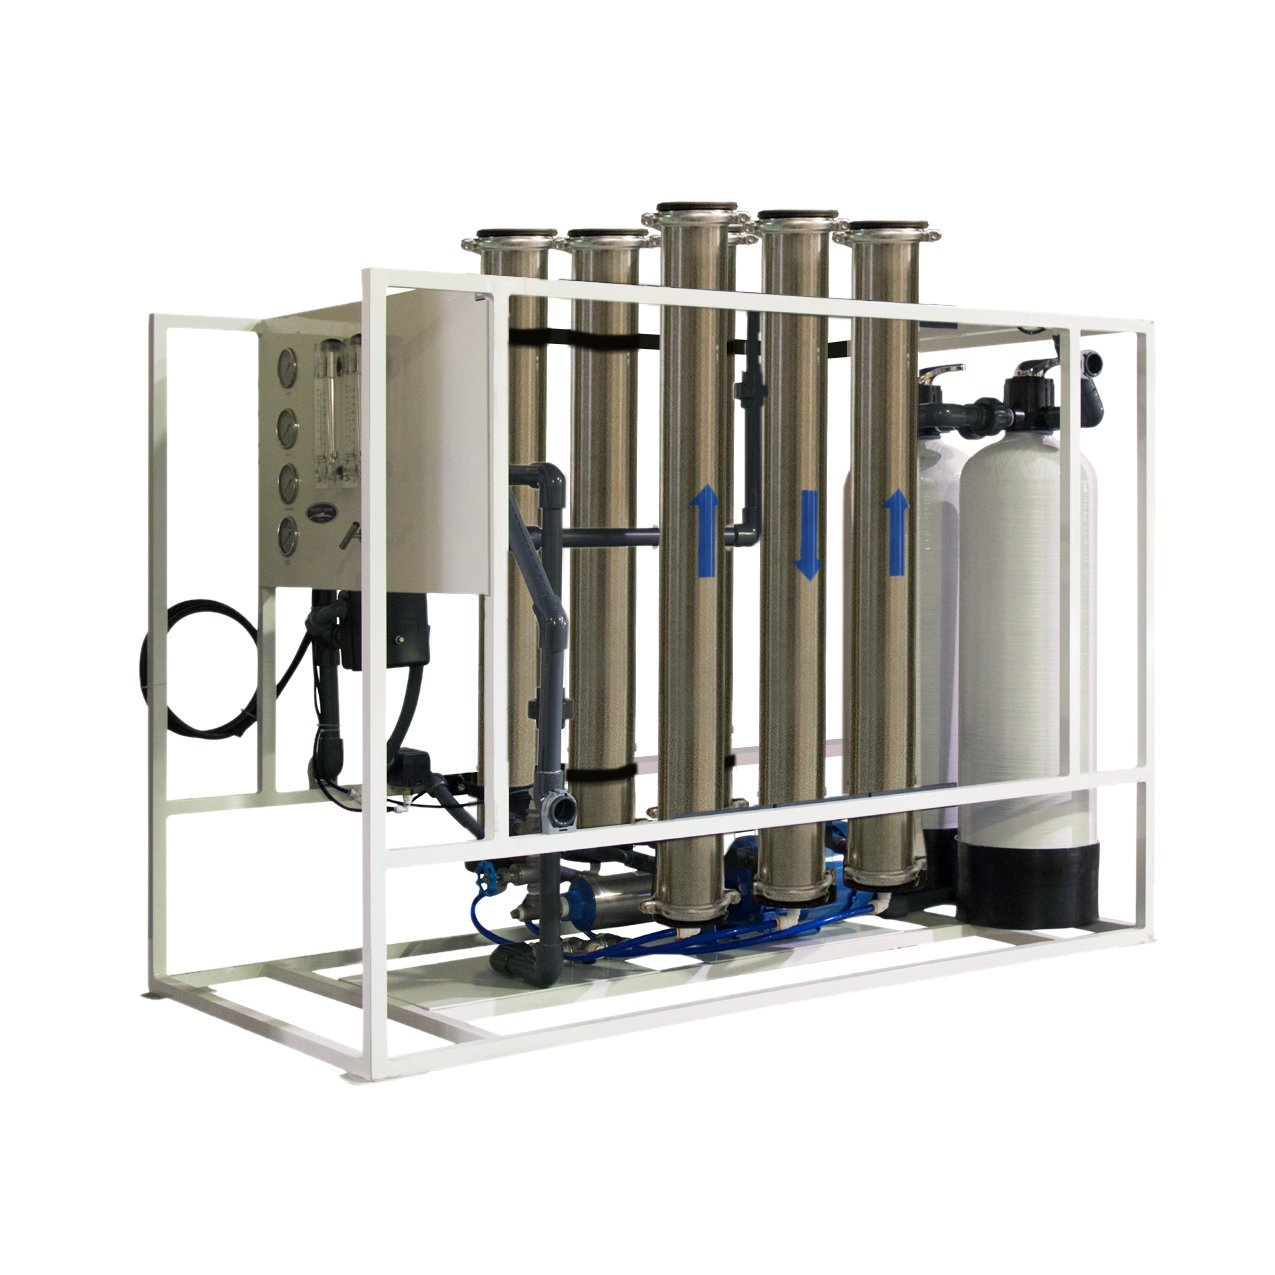 Reverse Osmosis Whole House Water Filter System - 10000 Gallons Per Day